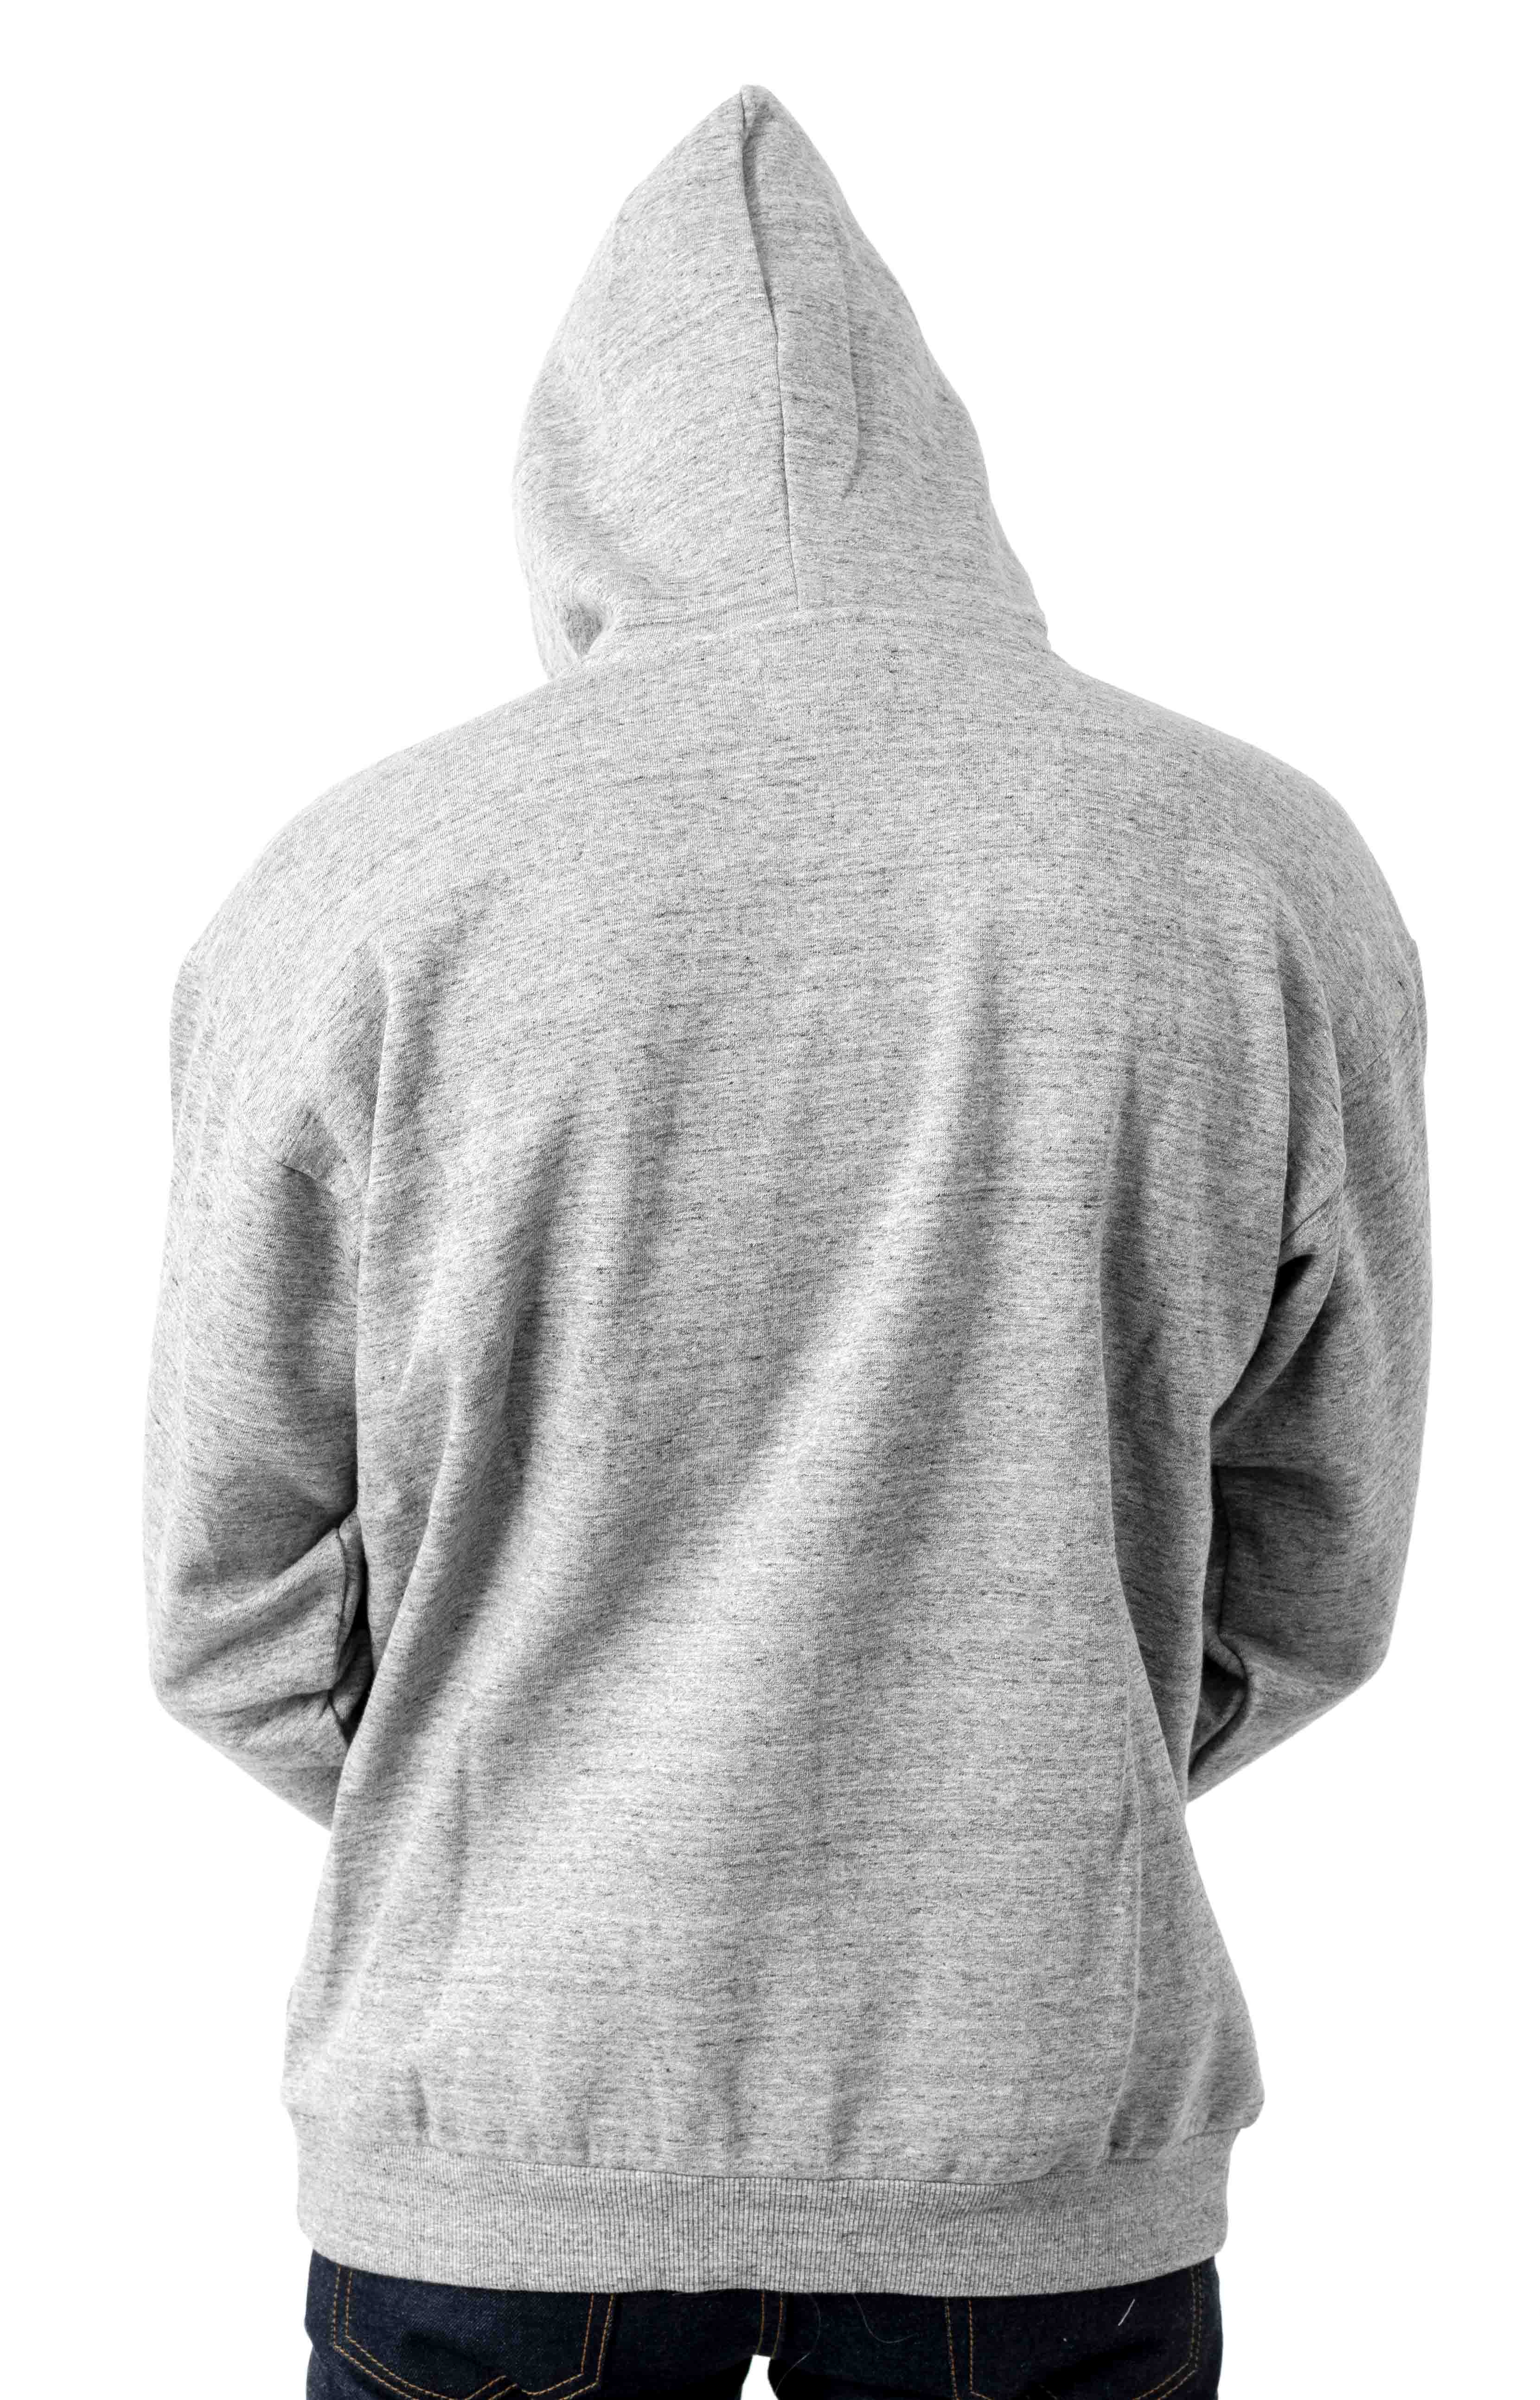 Parsons Pullover Hoodie - Heather Grey 3